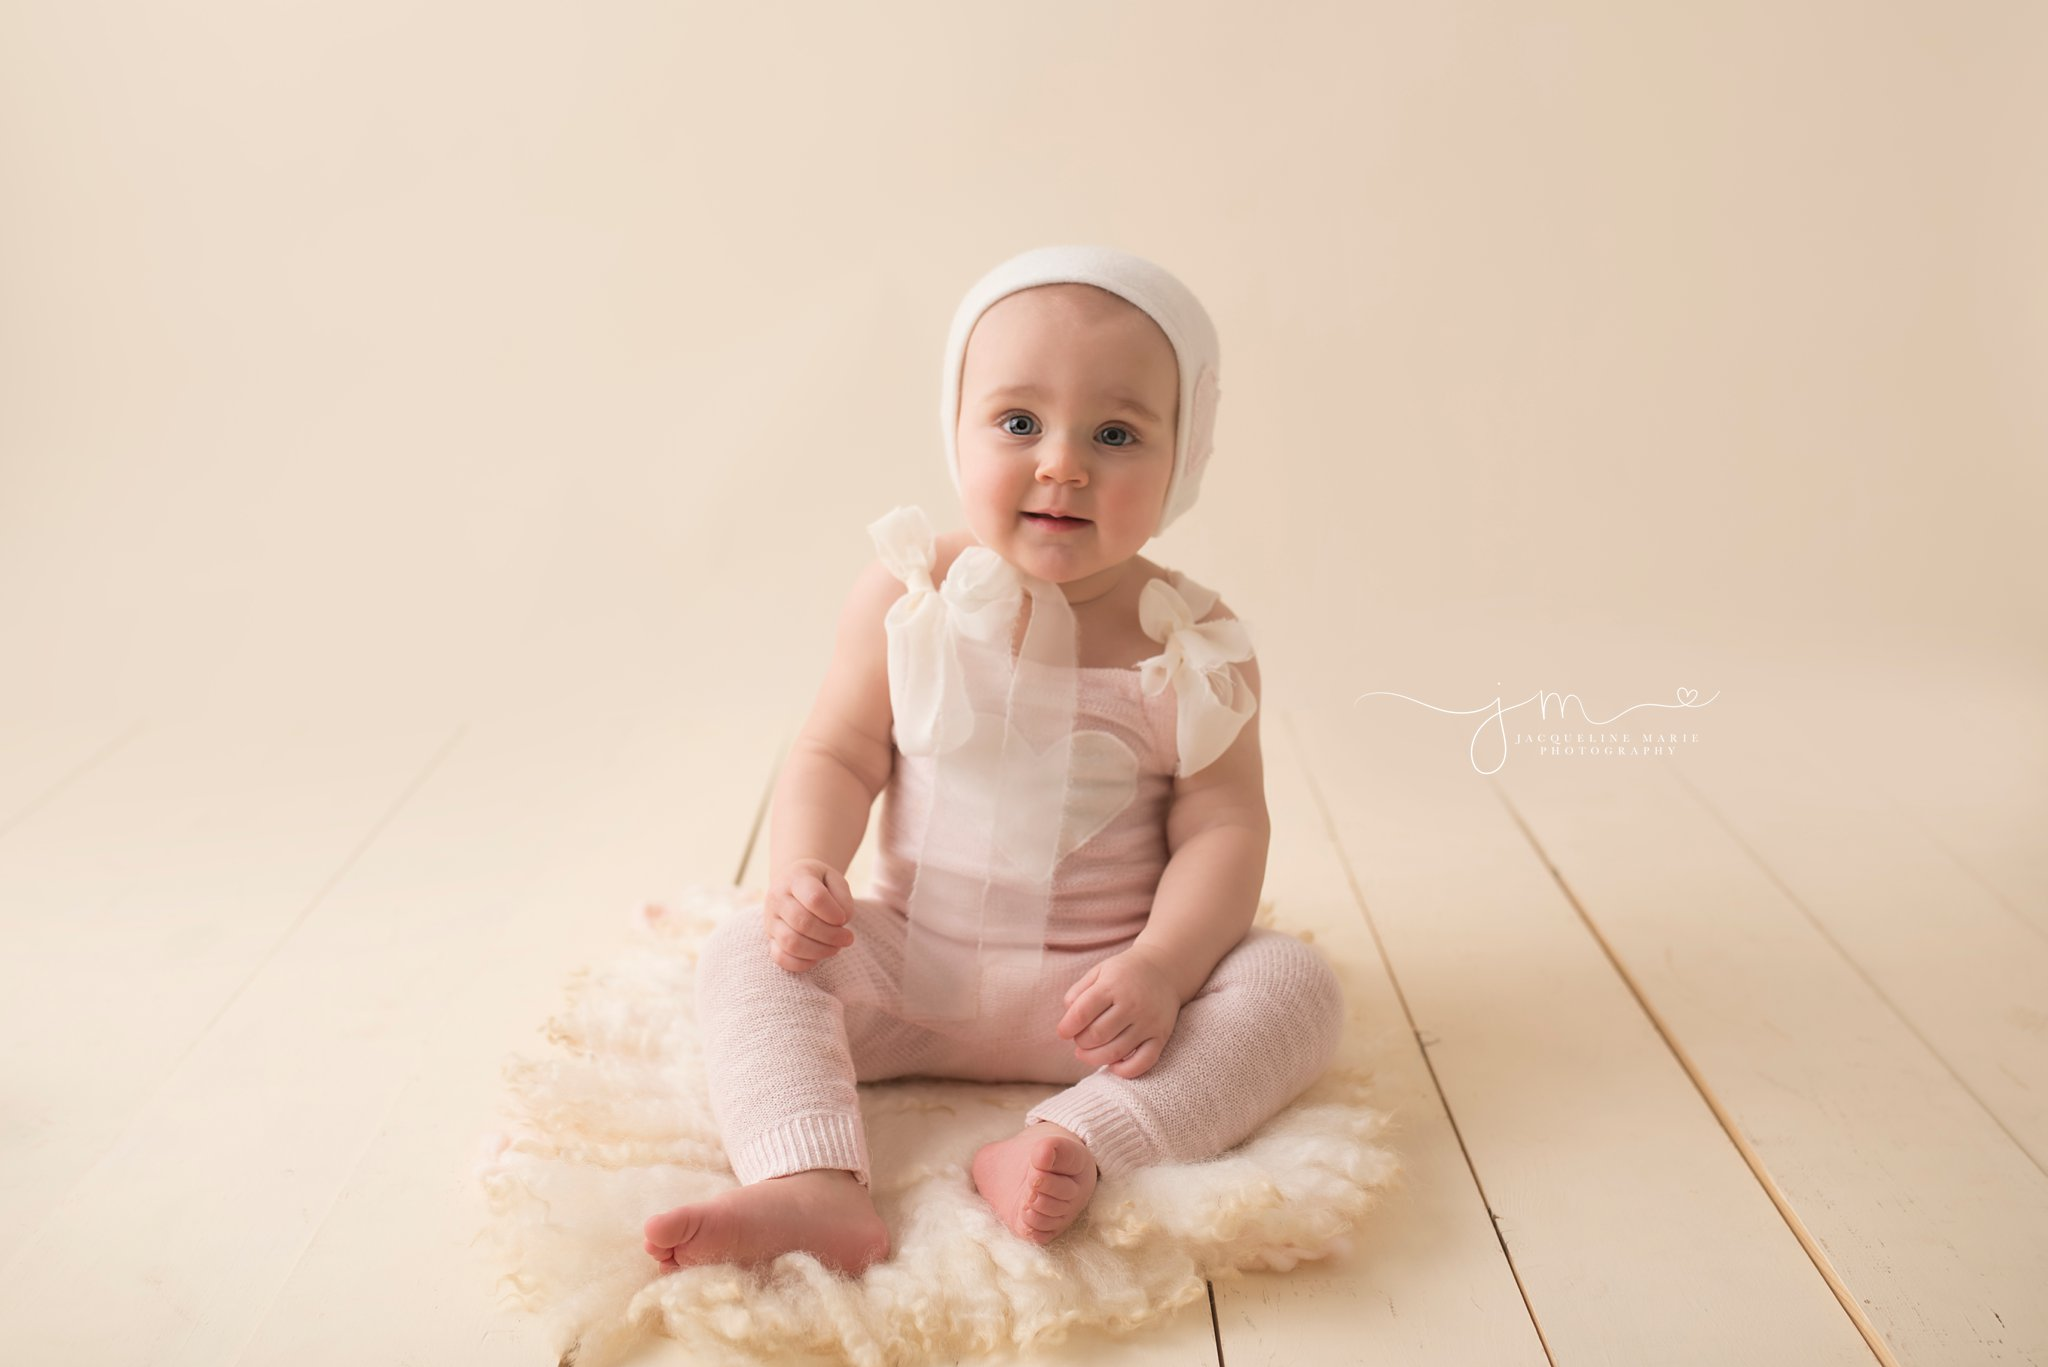 columbus ohio one year old wears pink and cream romper for first birthday pictures